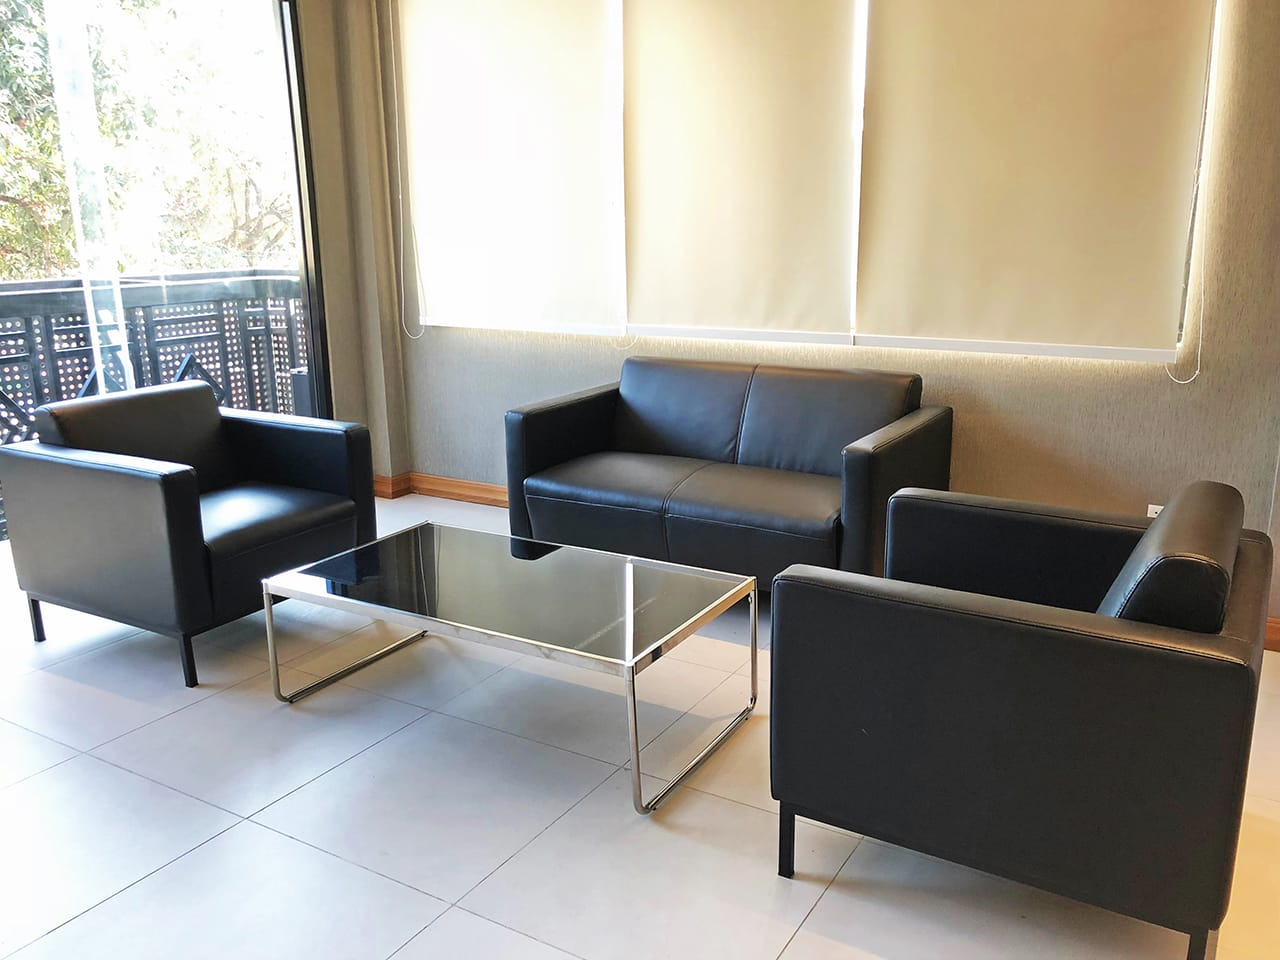 office chair yangon elite covers inc cotta coffee table  rect comfort design the